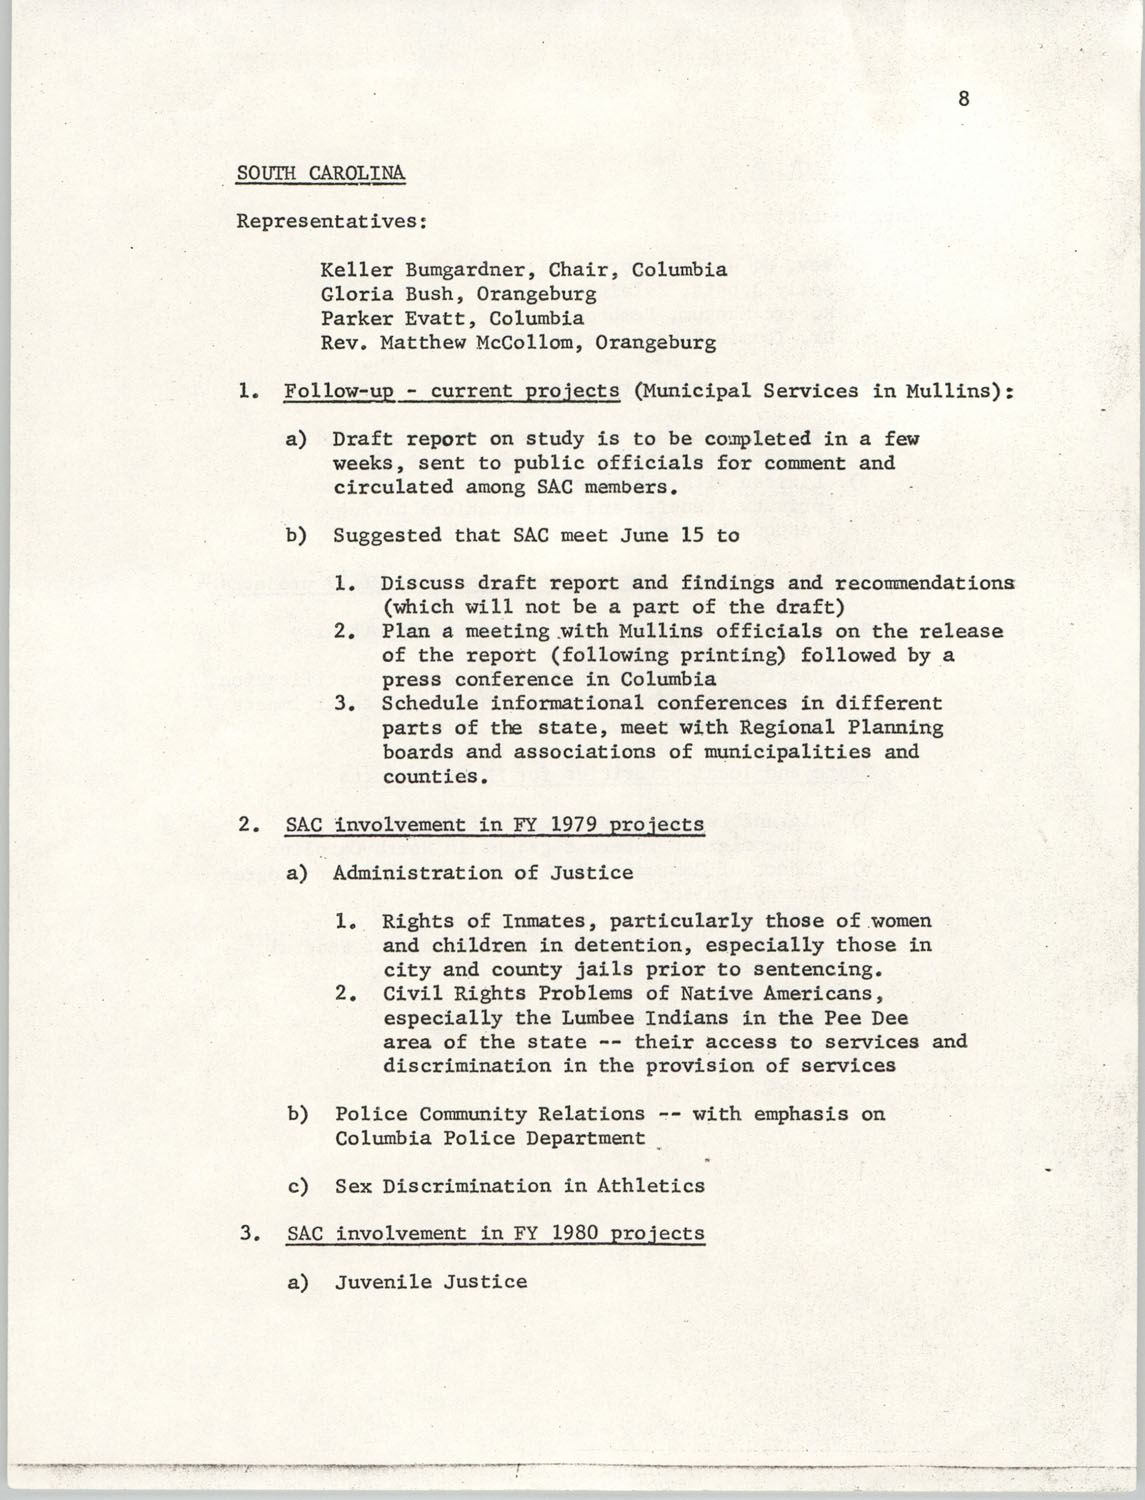 Minutes, SAC Southern Region Meeting, Page 8